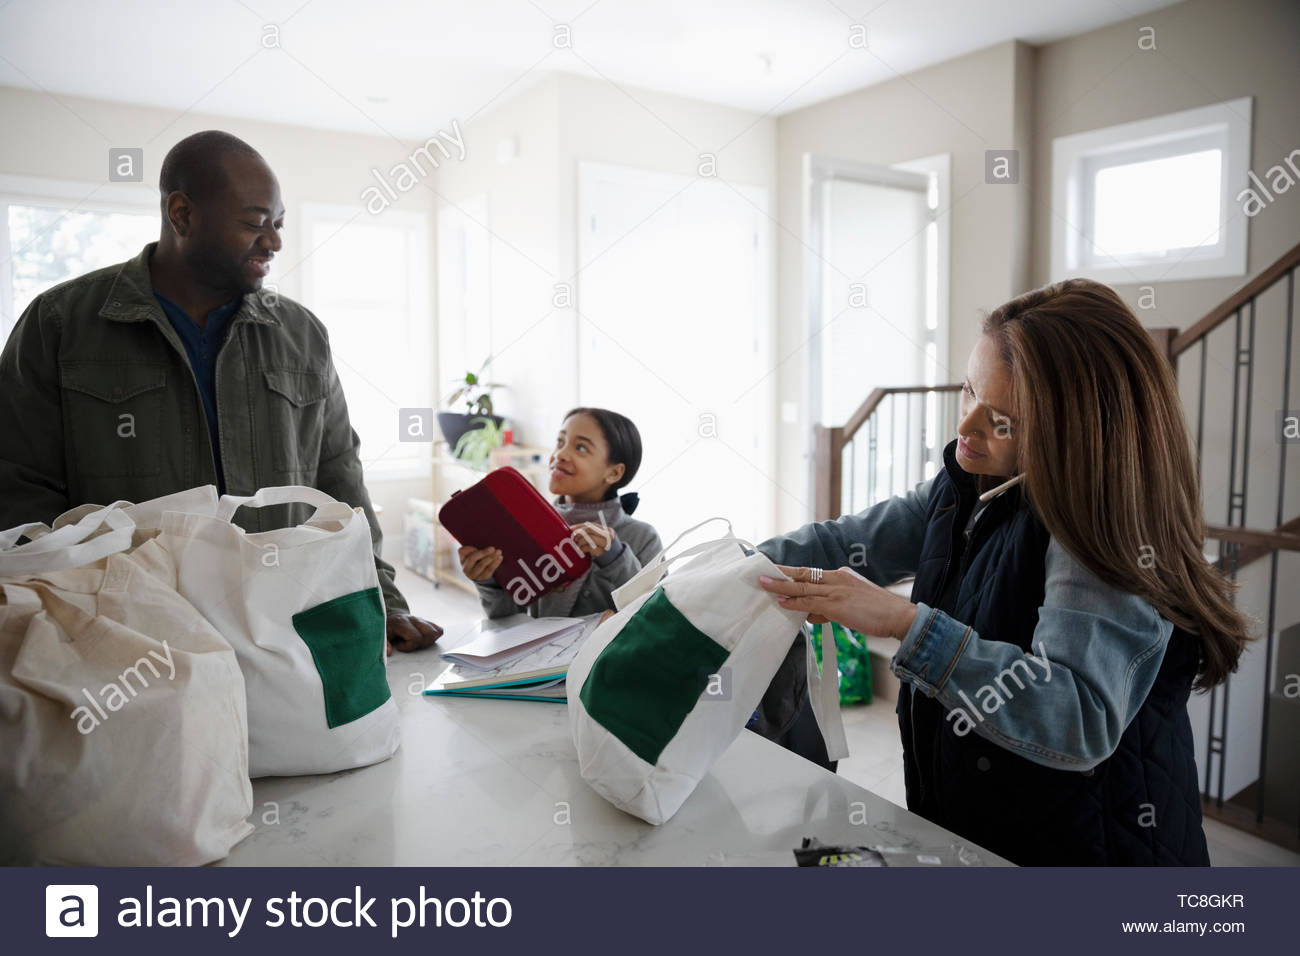 Family unloading groceries in kitchen - Stock Image